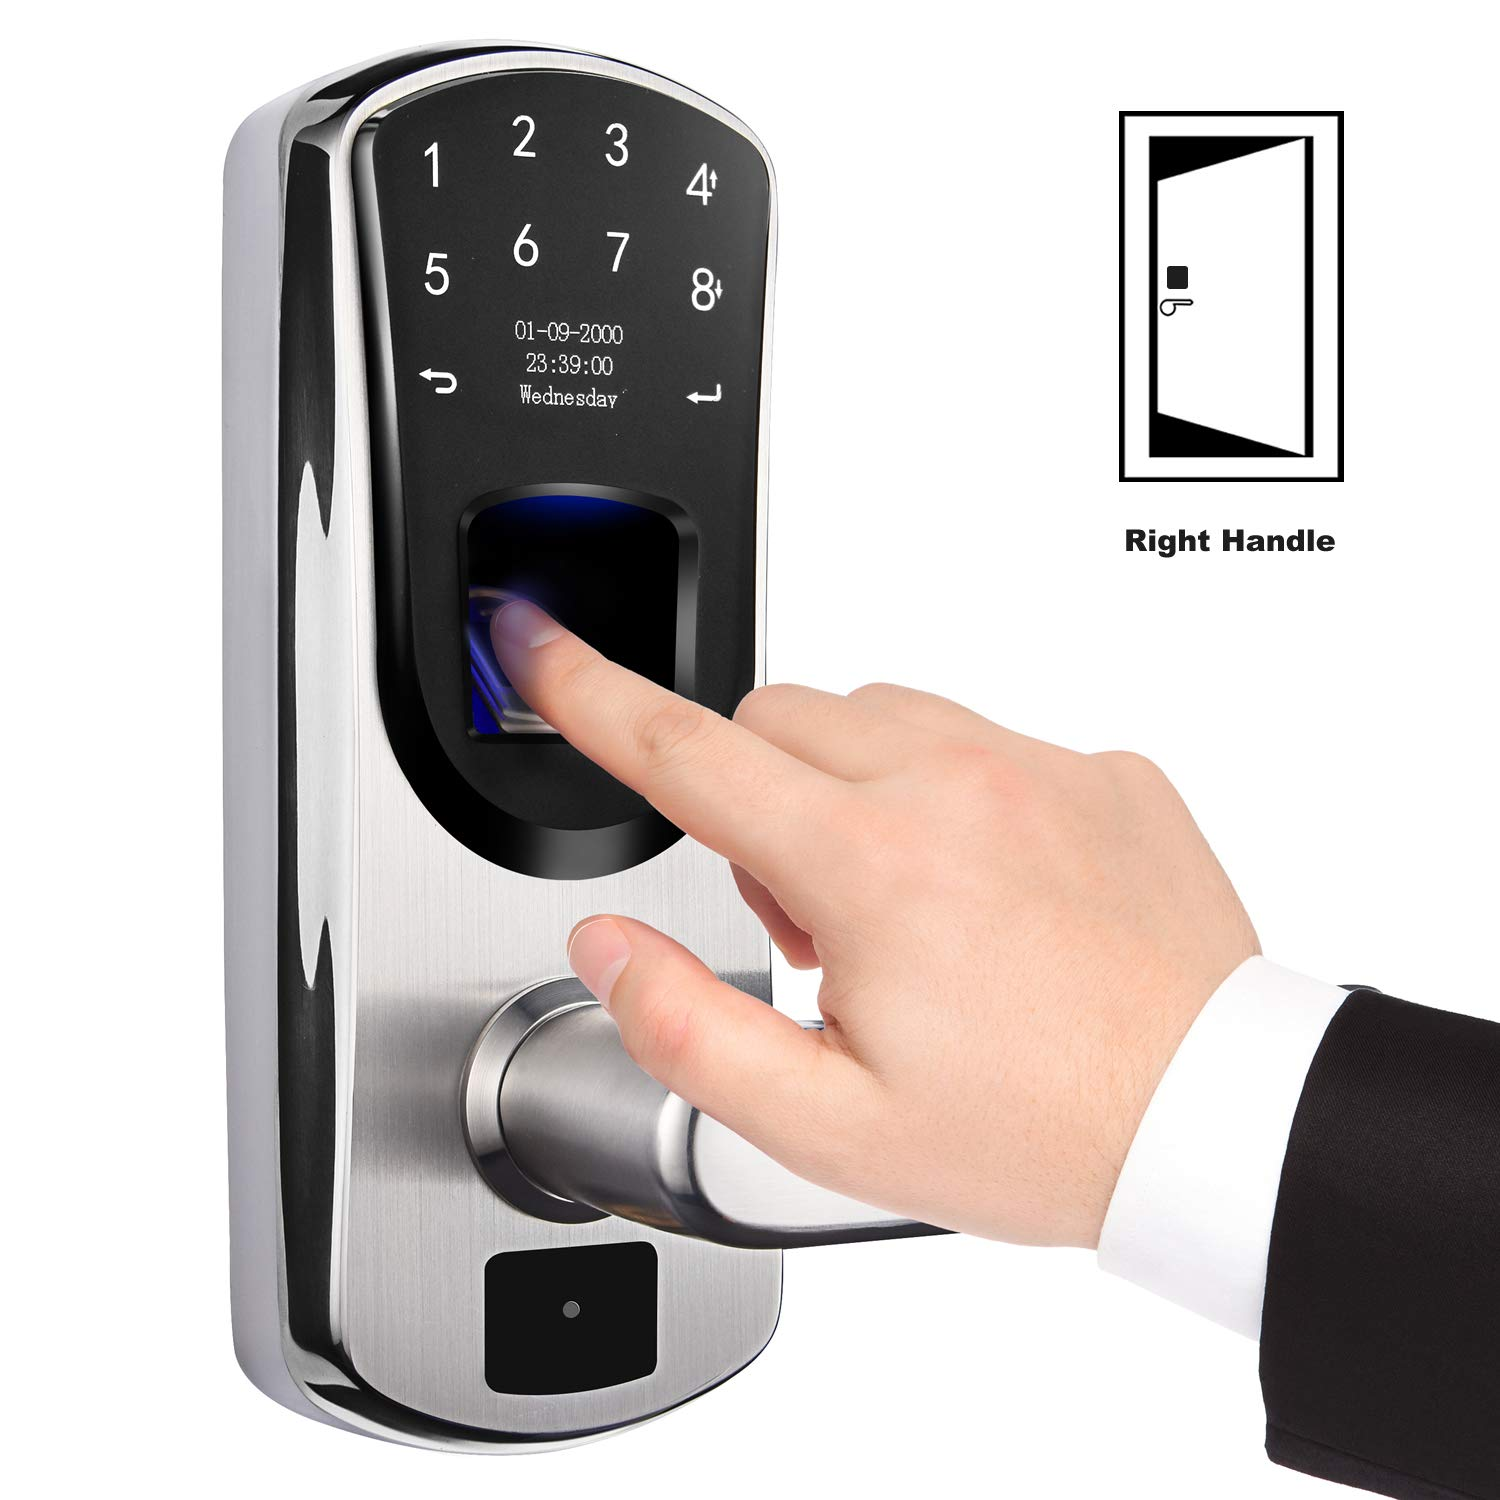 weJupit V8 Smart Lock, Fingerprint and Touchscreen Keyless Stainless Steel Lever Door Lock, Password Lock